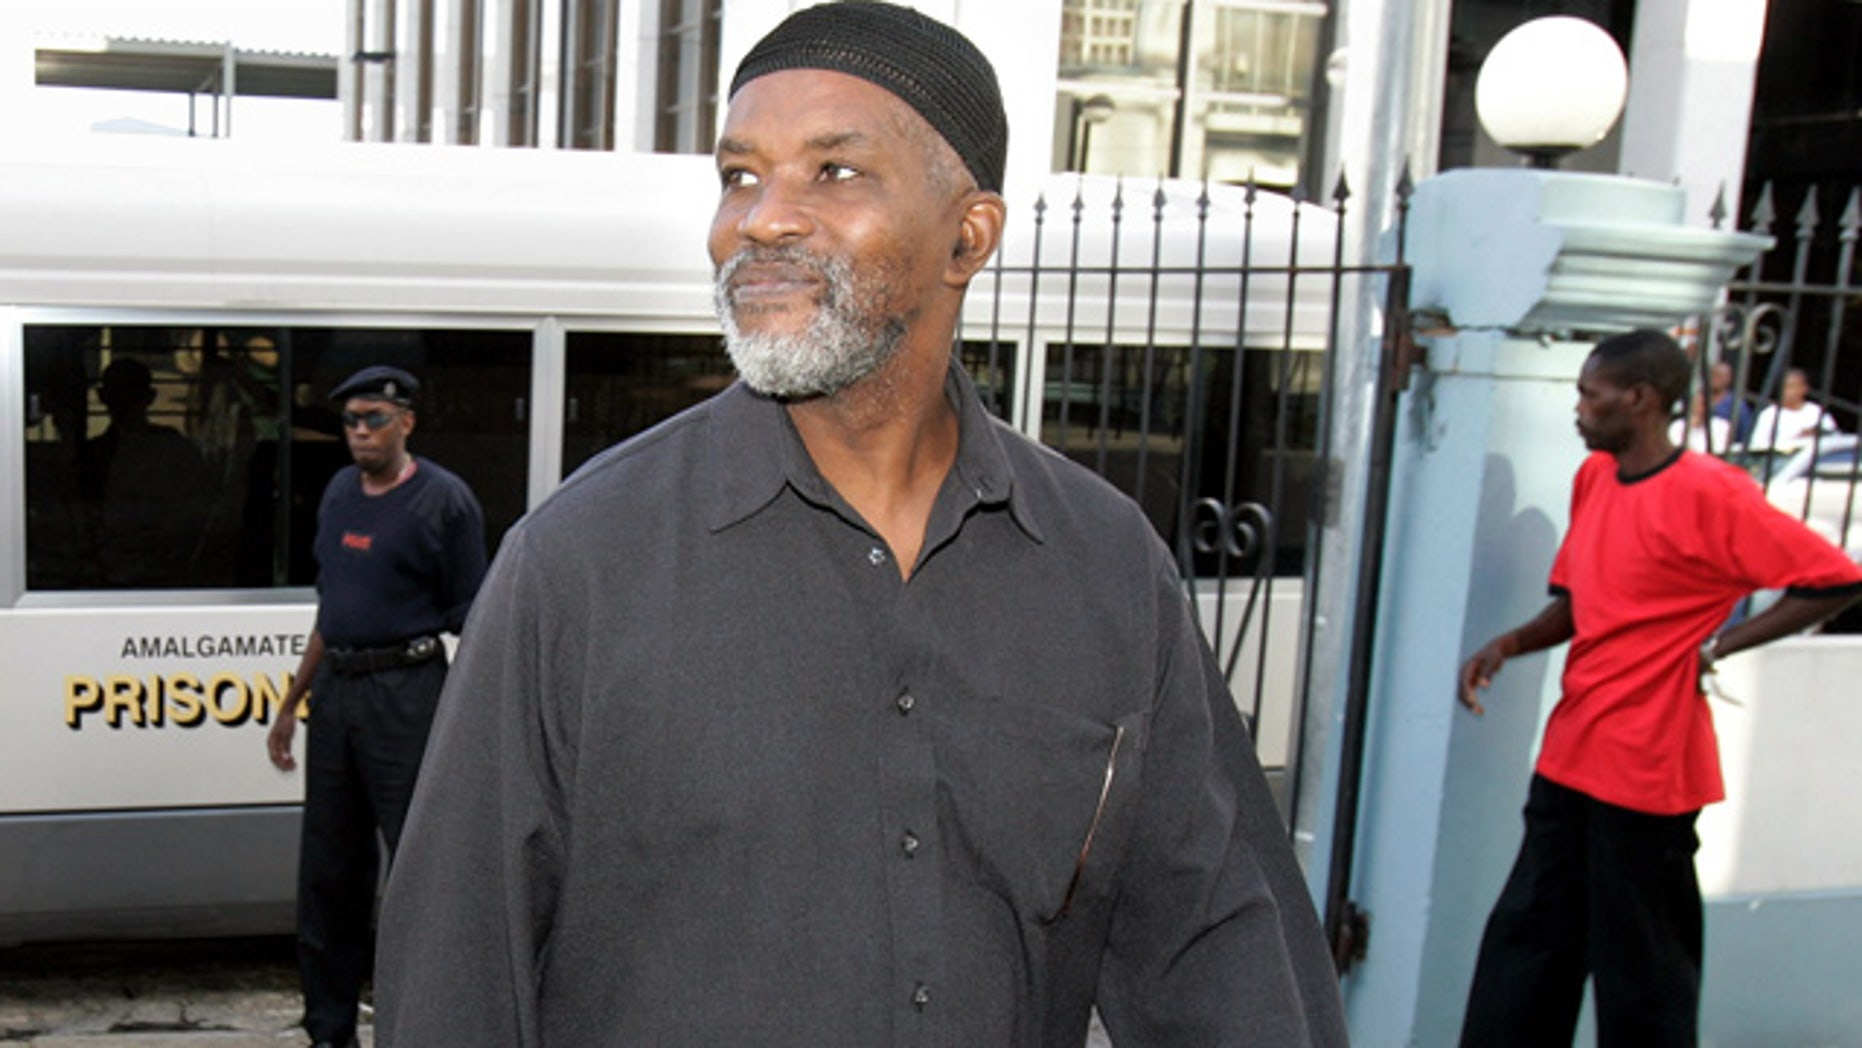 In this Aug. 6, 2007 photo, Guyanese Abdul Kadir, former member of the South American nation's Parliament, arrives at the Magistrates' Court for an extradition hearing in downtown Port-of-Spain, Trinidad.